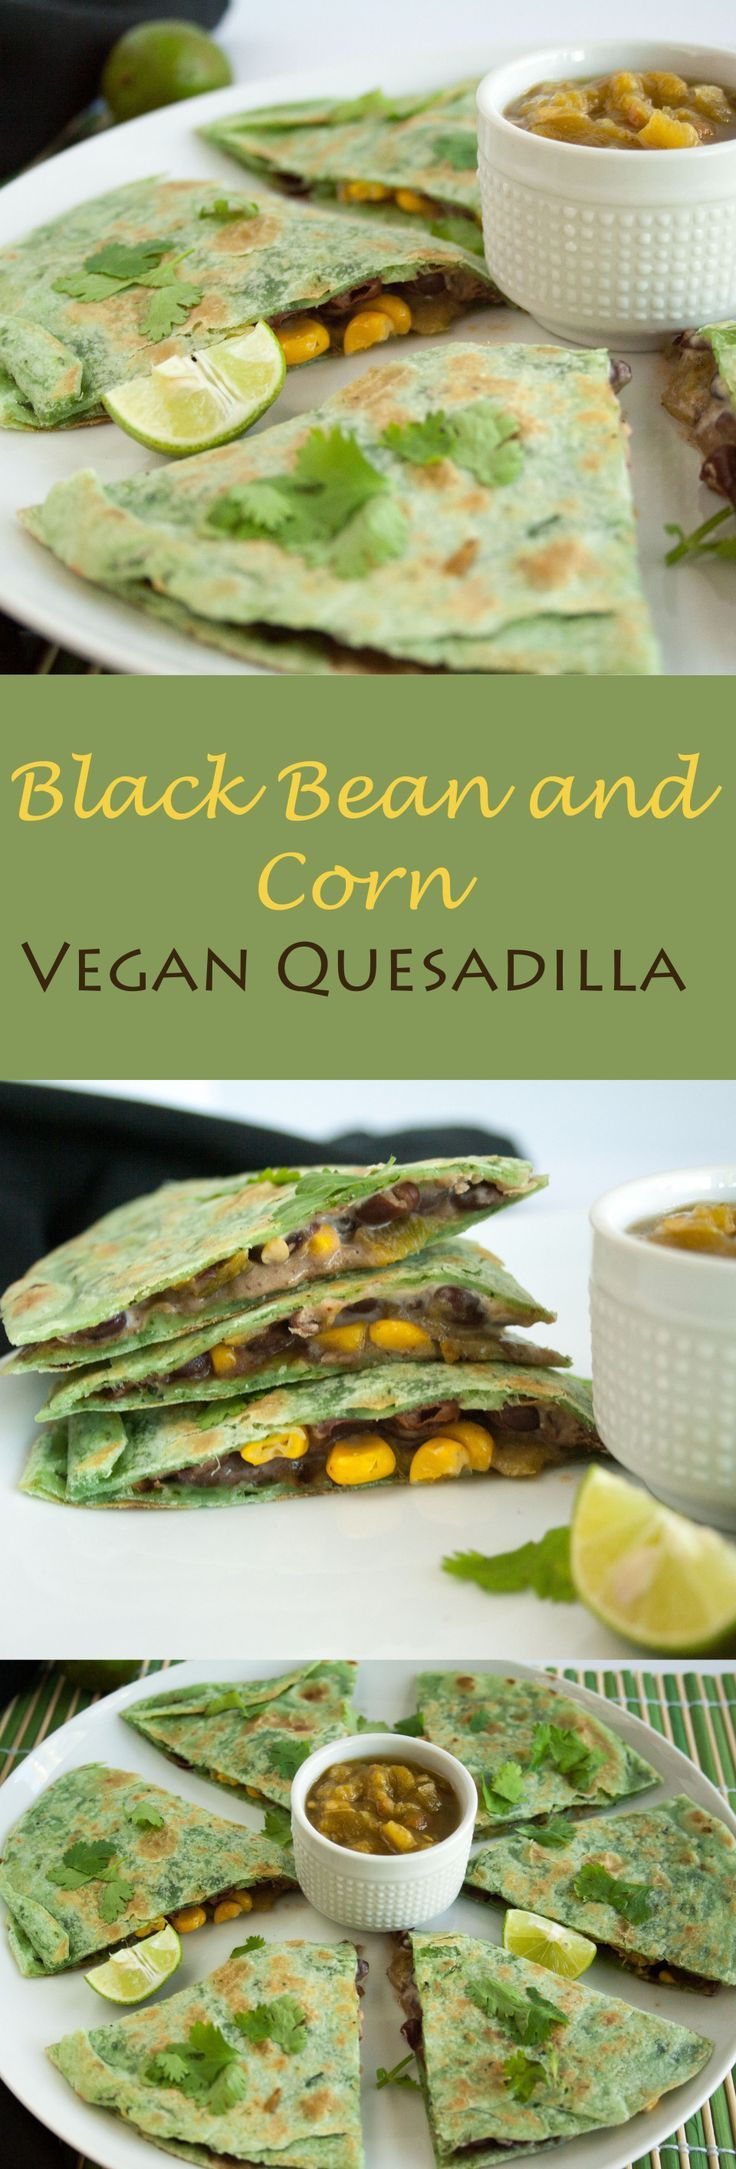 Black Bean and Corn Vegan Quesadilla - These rich vegan, gluten free quesadillas with roasted green chiles can be made in no time.